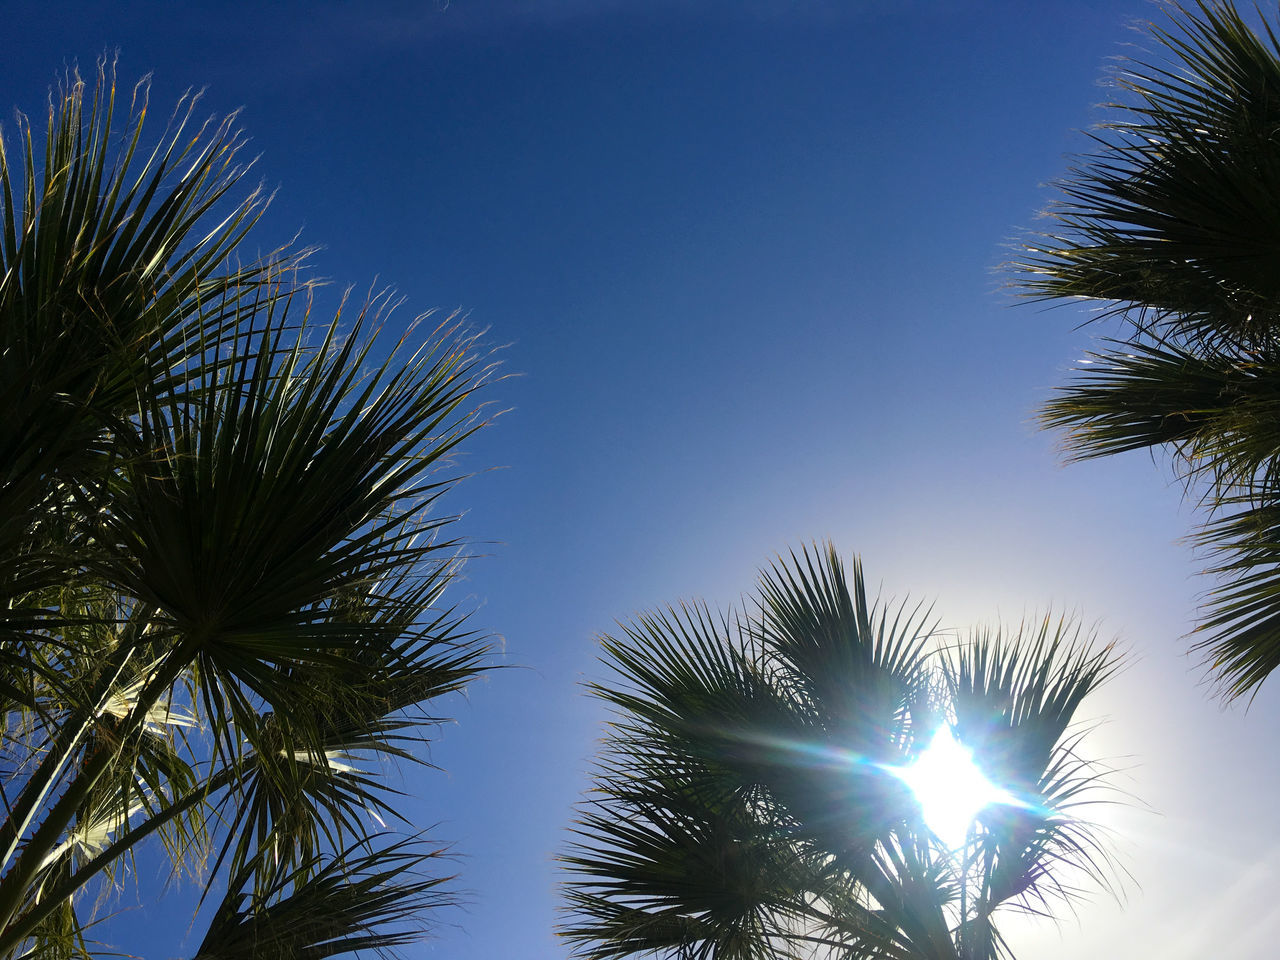 palm tree, low angle view, tree, beauty in nature, nature, clear sky, growth, no people, palm frond, sky, blue, outdoors, tranquility, day, tree trunk, scenics, sunlight, close-up